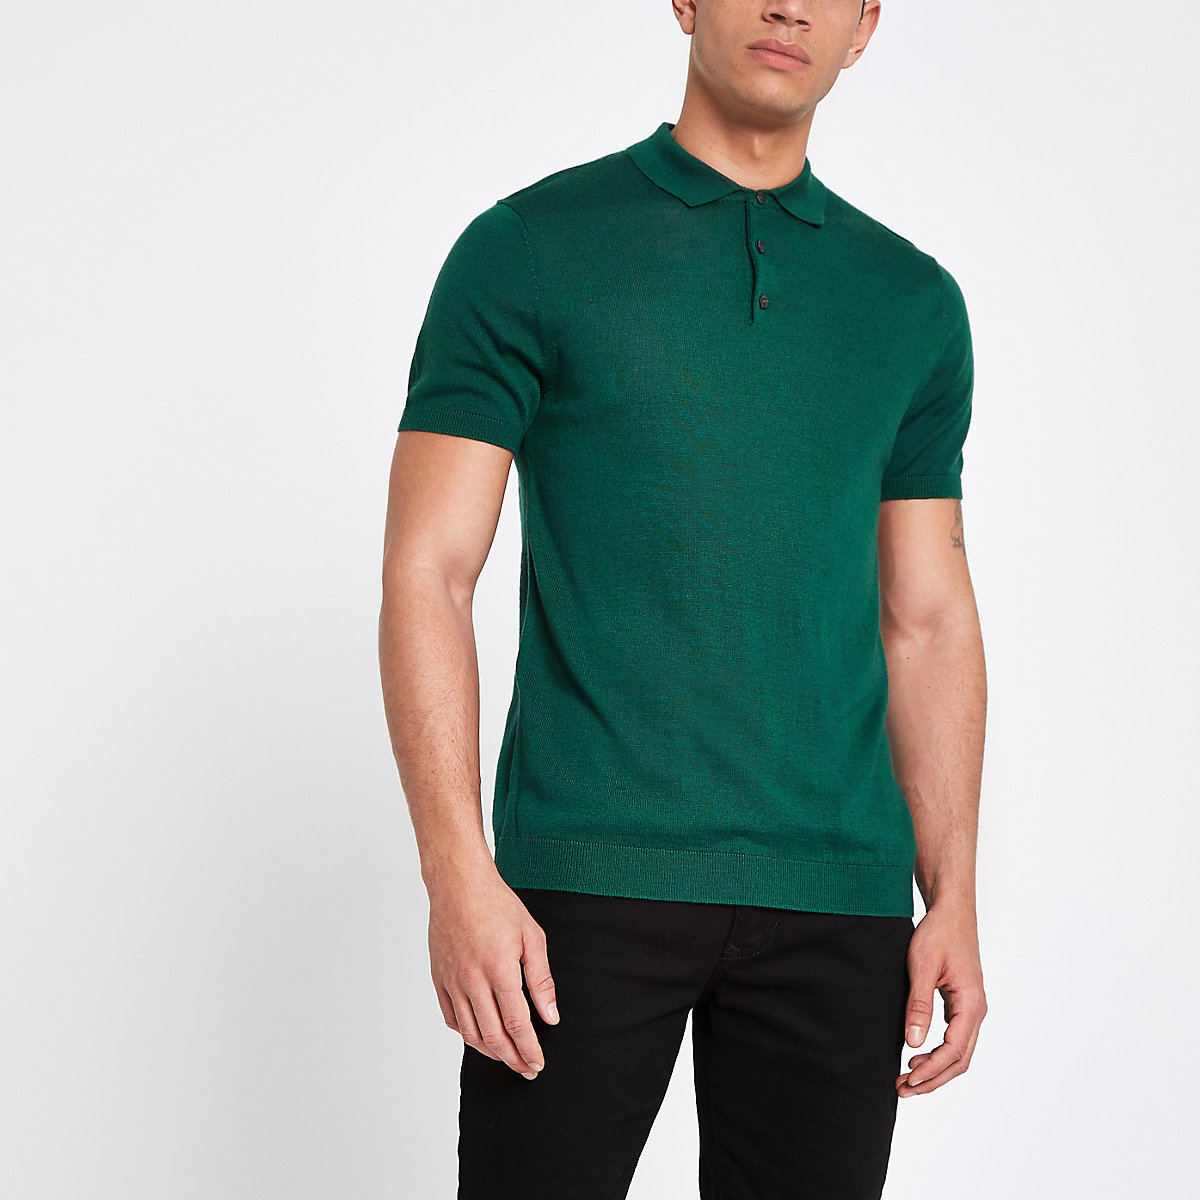 Selected Homme green knitted polo shirt